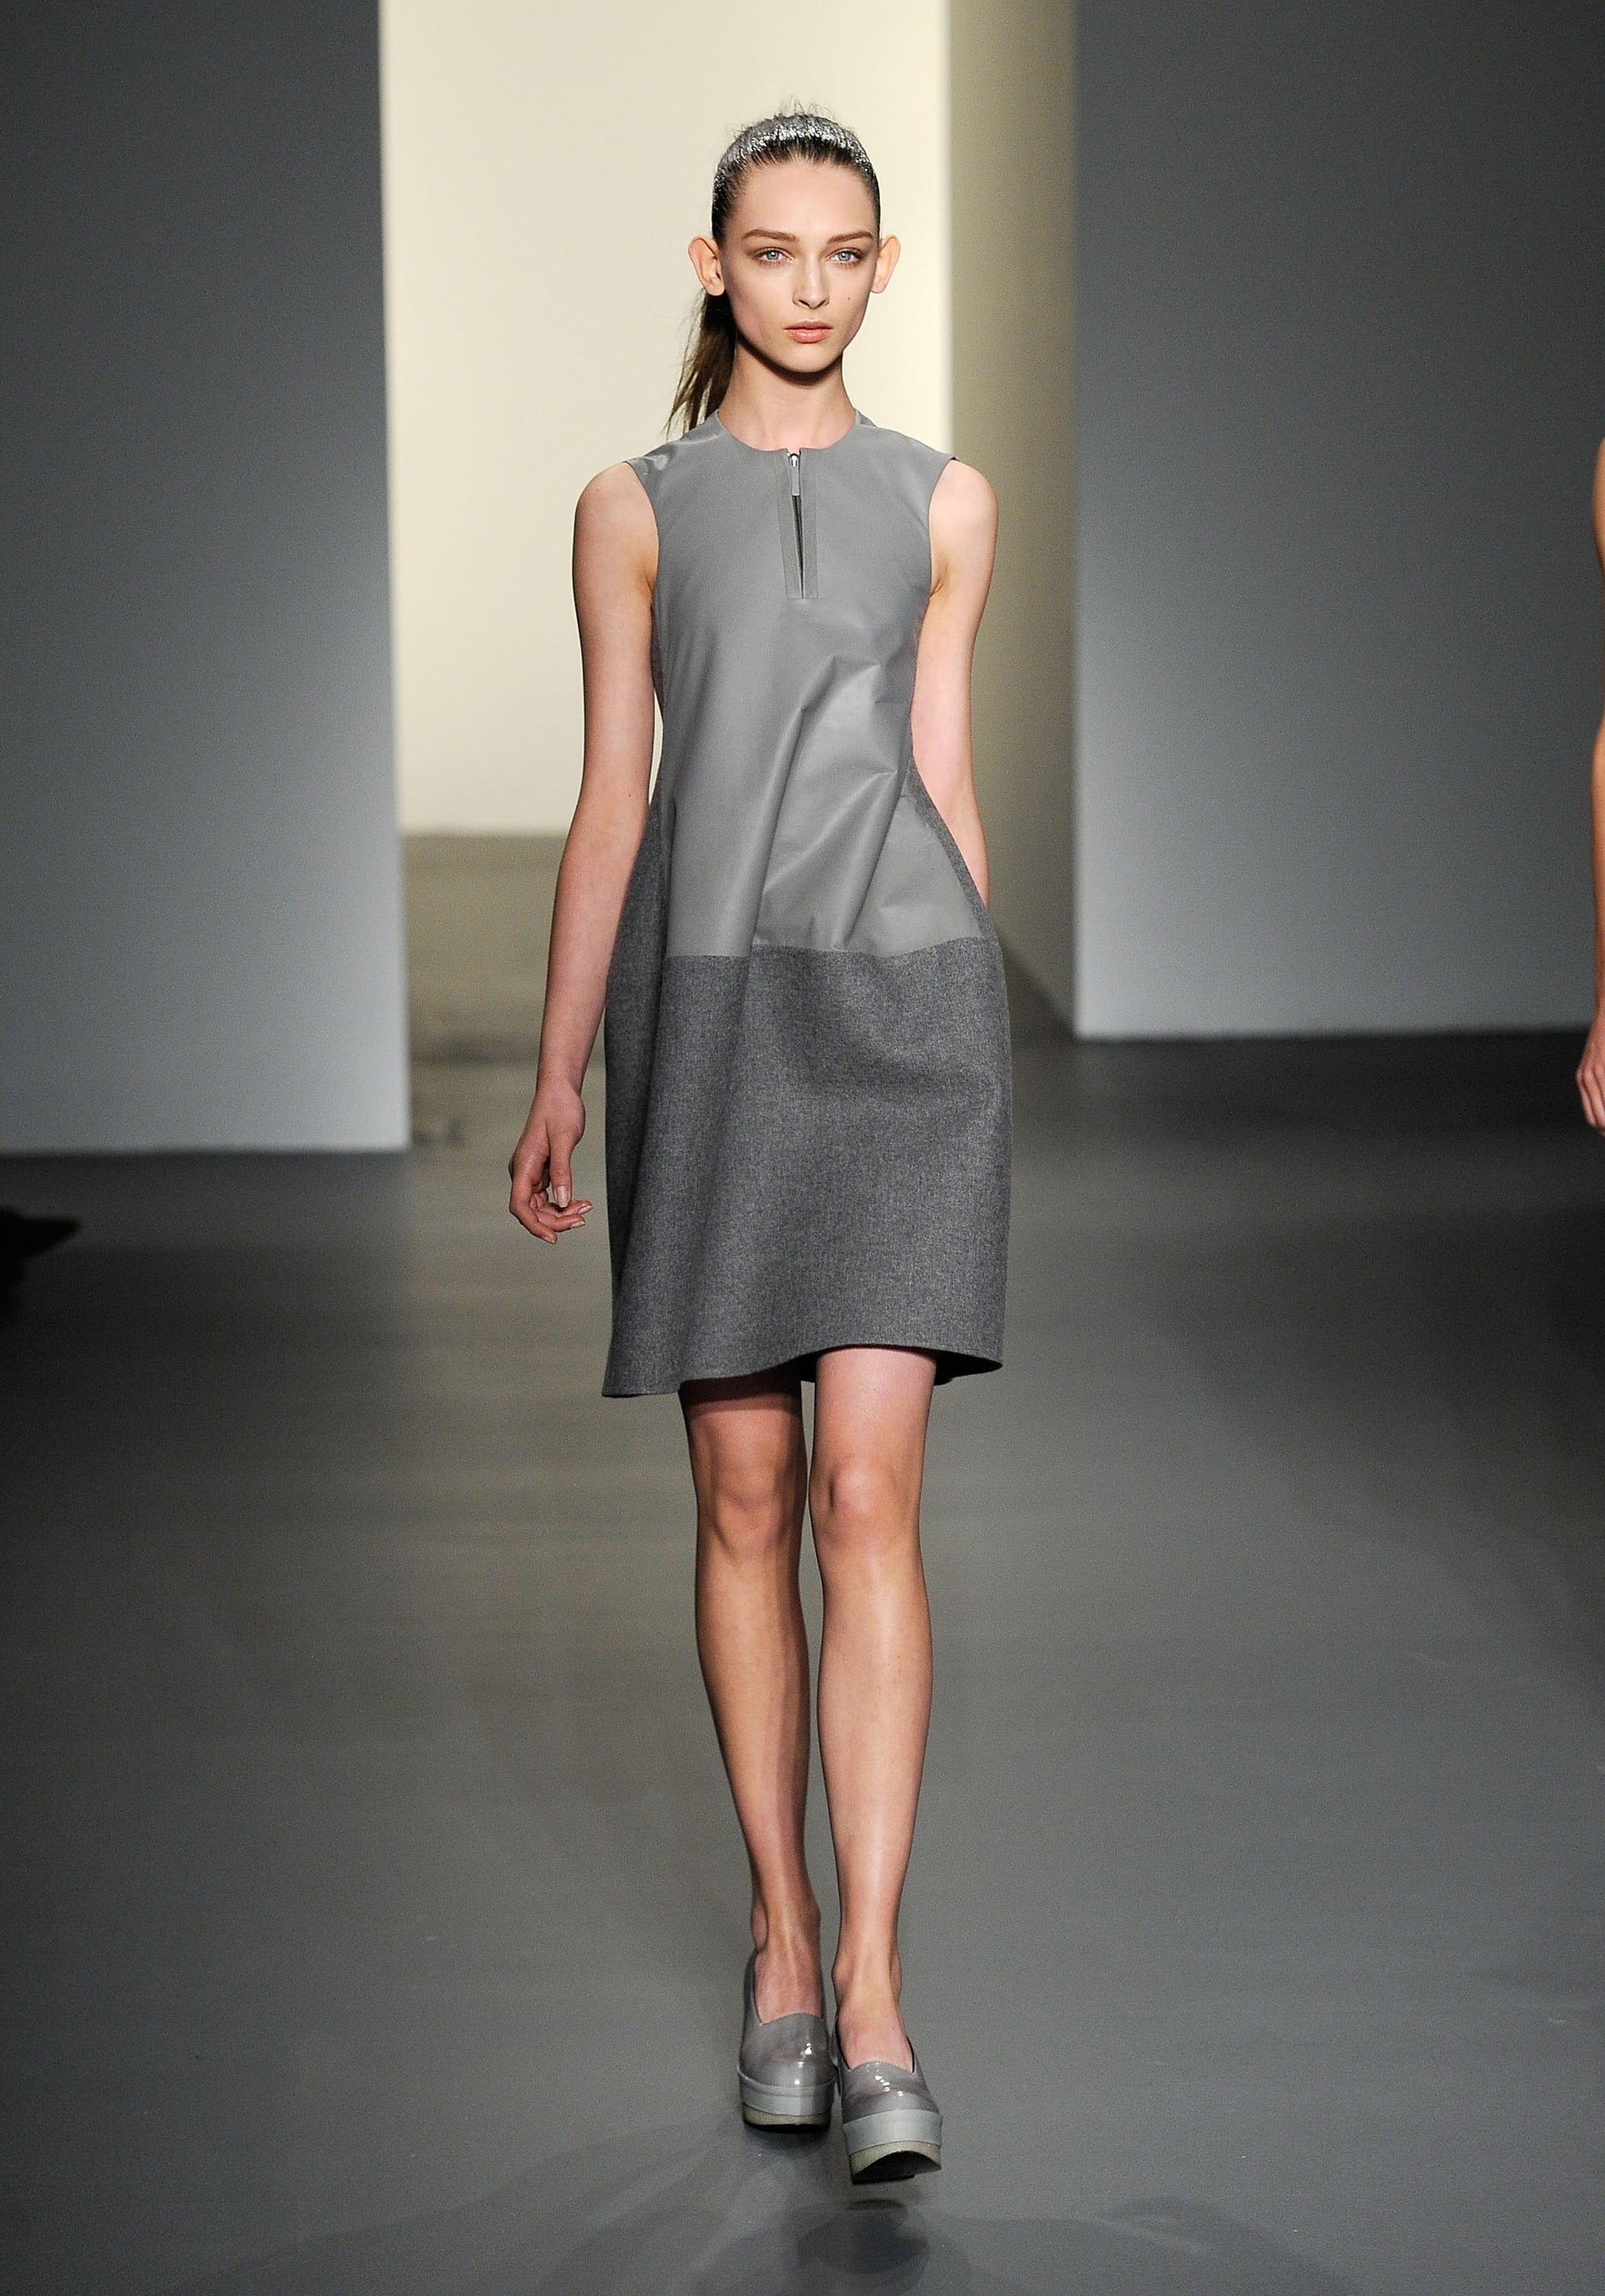 Calvin Klein Autumn/Winter 2011 / 2012 in New York Fashion Week